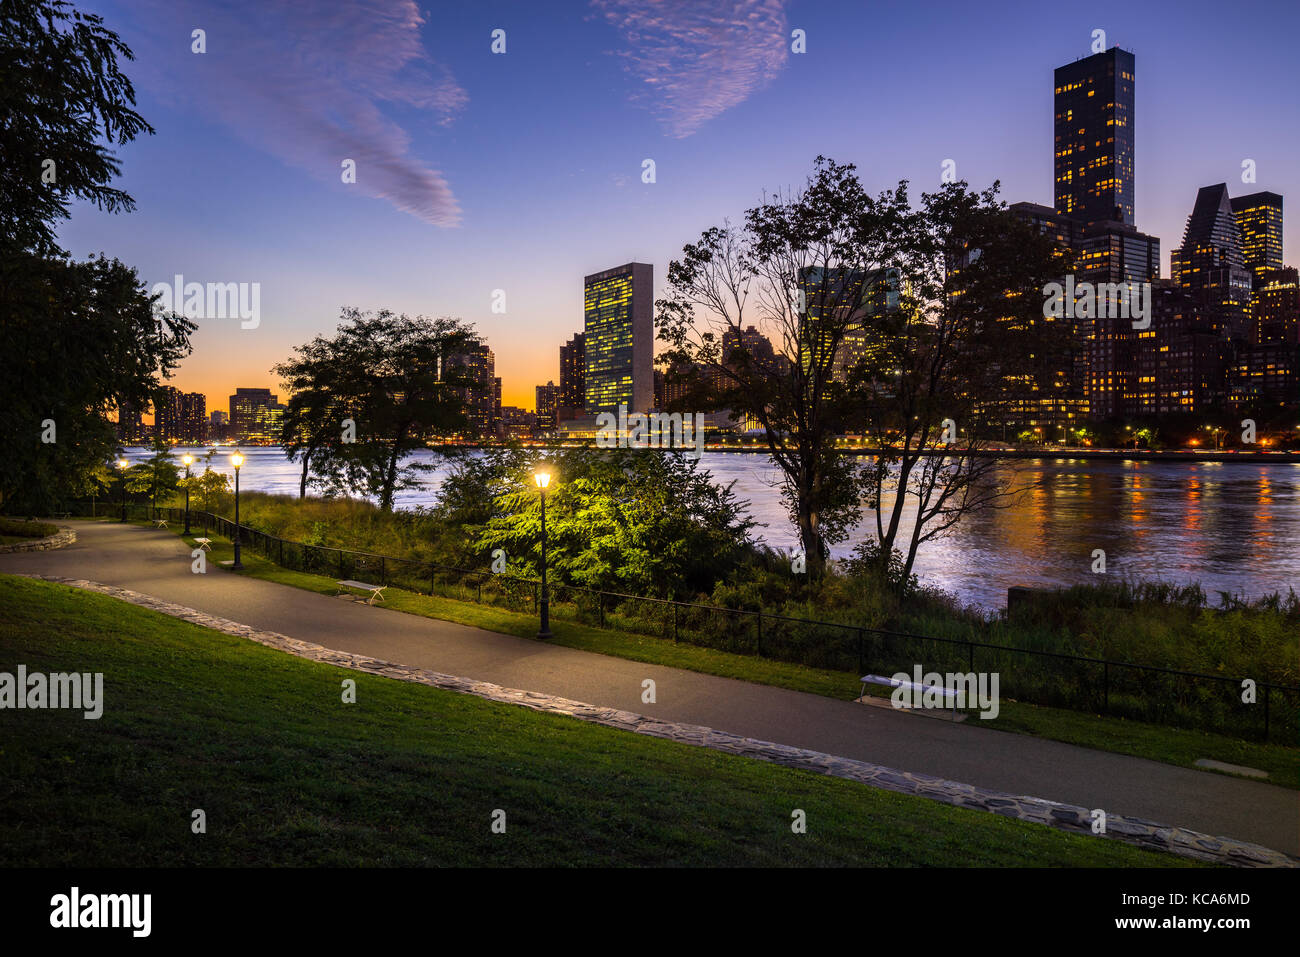 Soir d'été vue sur Manhattan Midtown East à partir de Roosevelt Island avec l'East River. Photo Stock